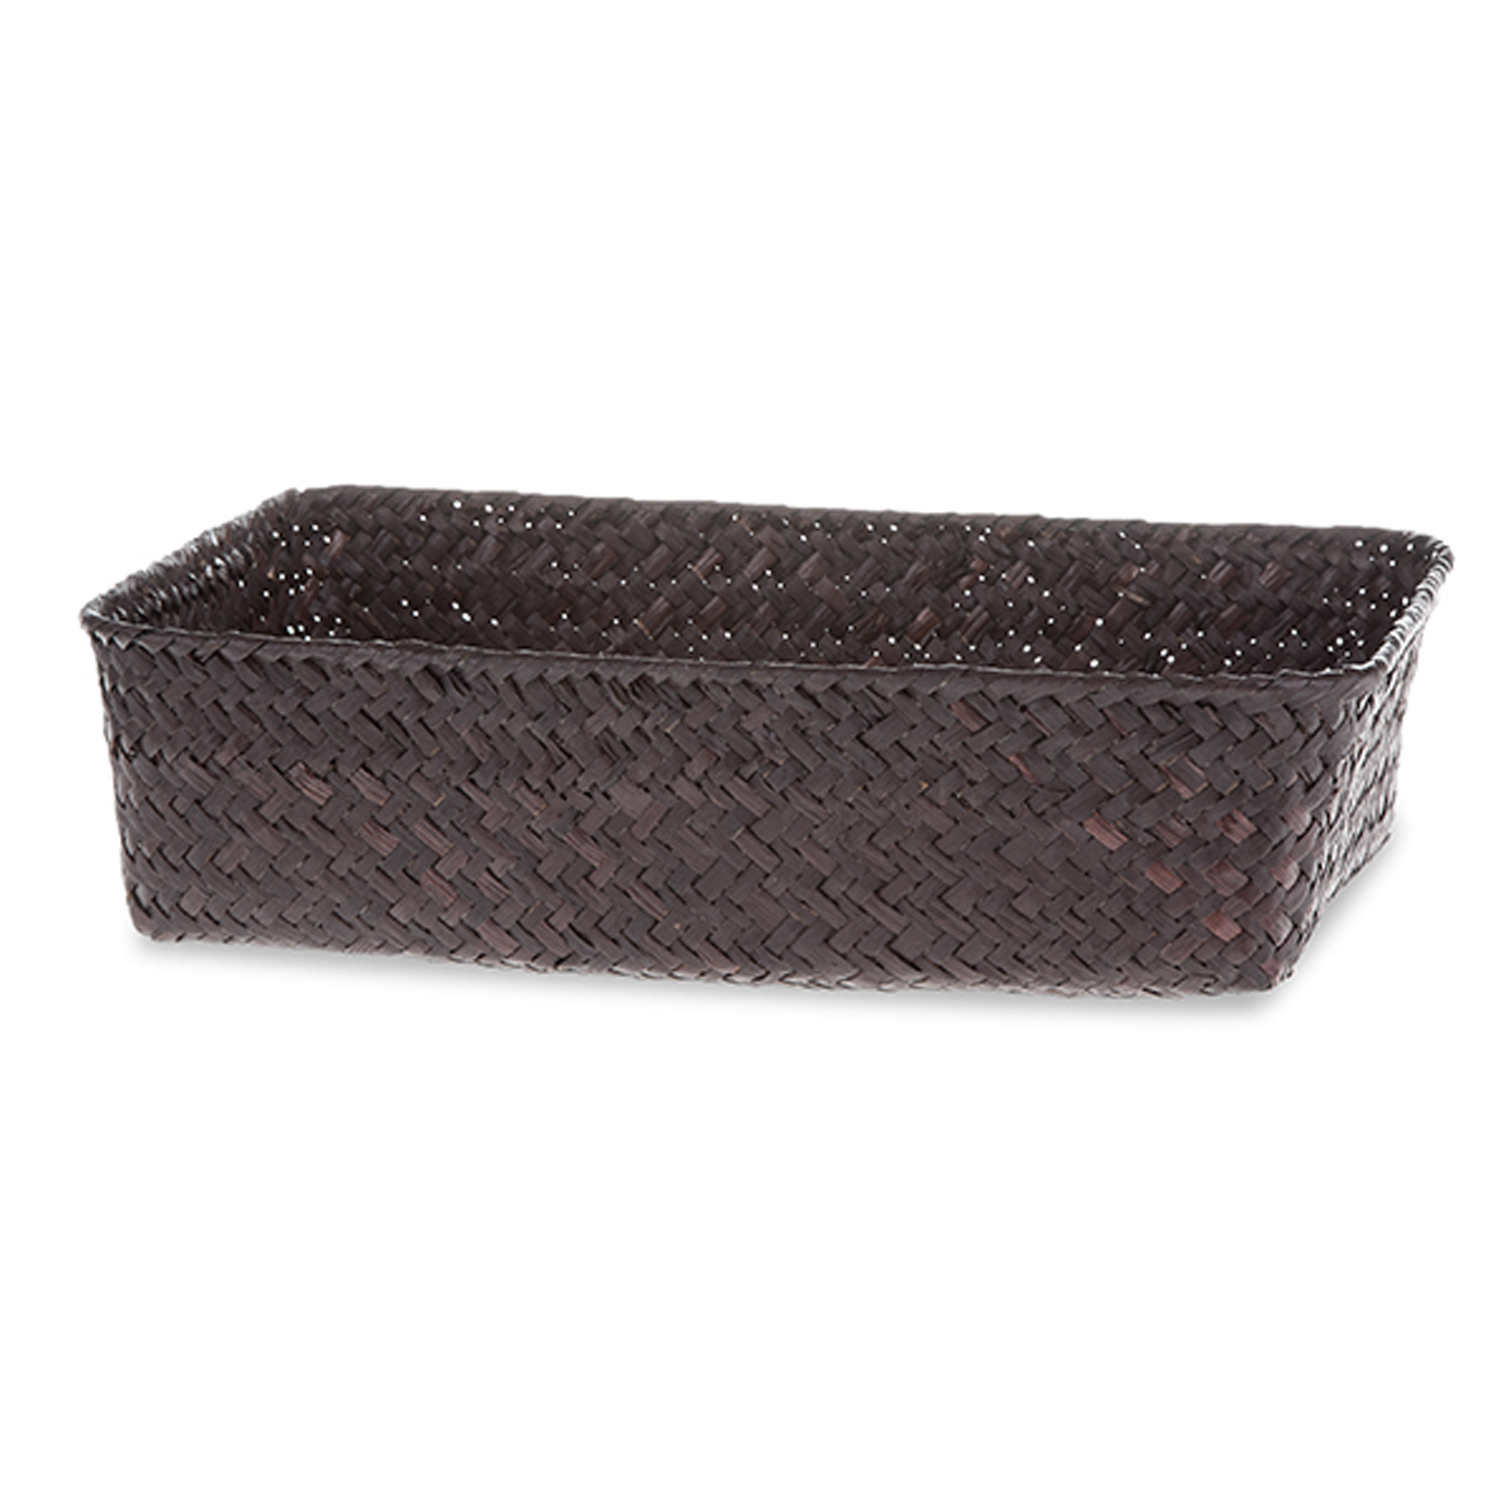 Alexa Rectangular Utility Tray - Medium 10in